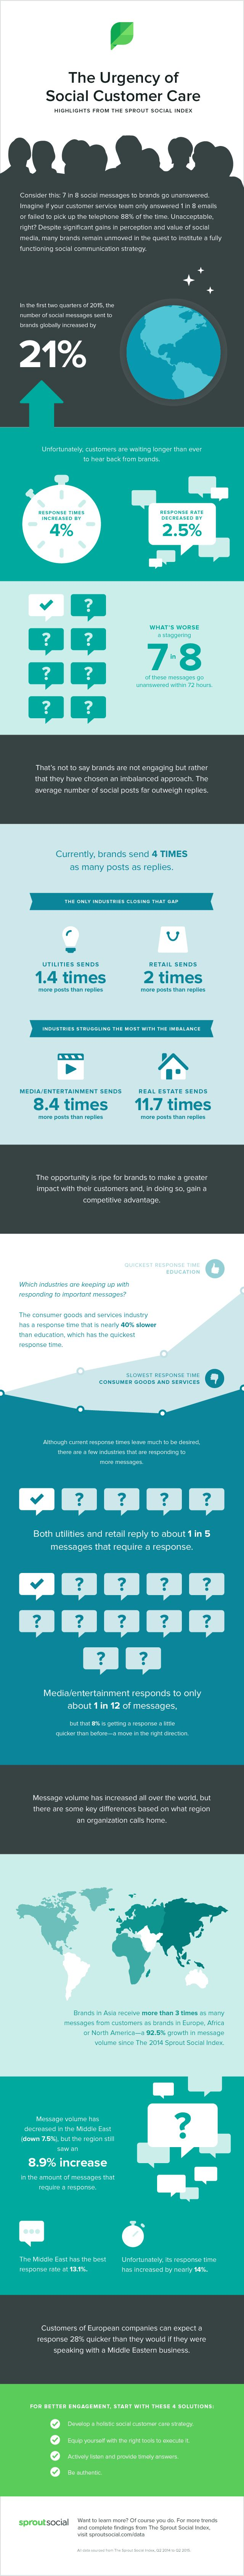 The Urgency of Customer Care. How to respond promptly to customers on social media. #infographic